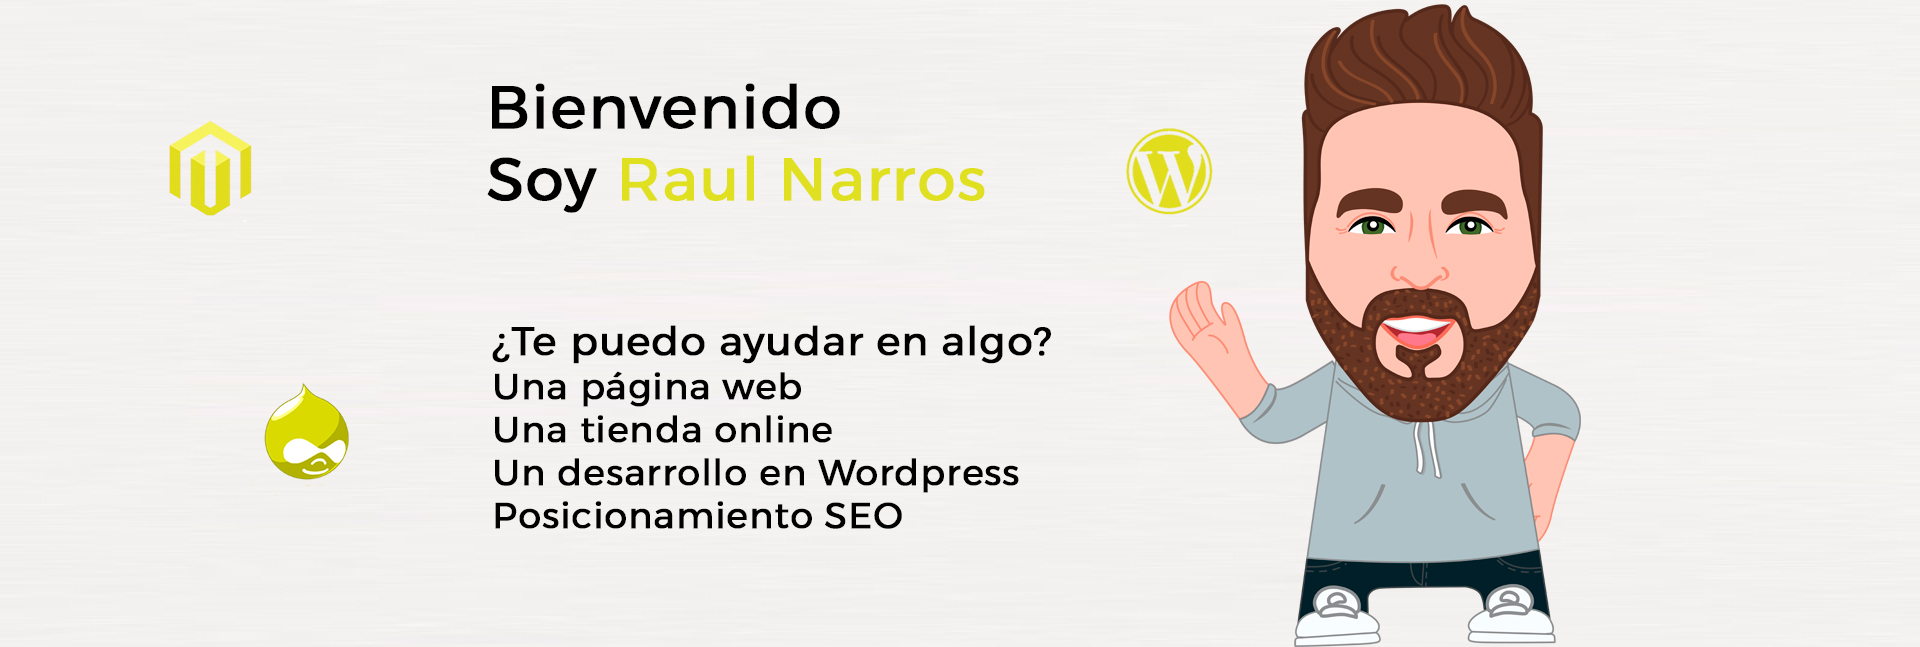 RN programación web en Wordpress